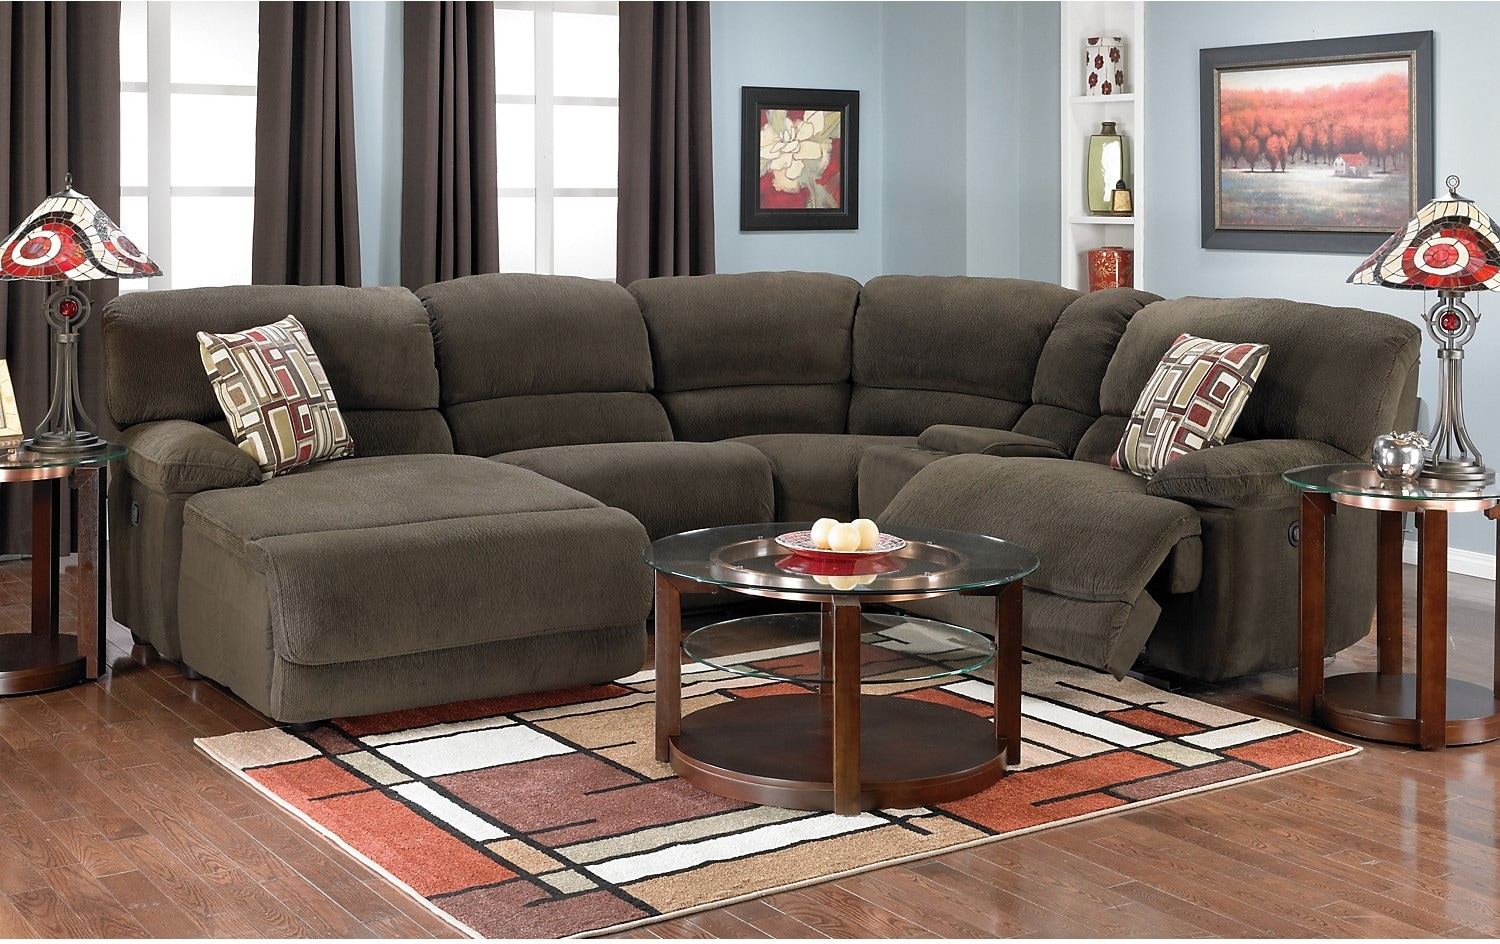 Devon 5 Piece Microsuede Sectional Brown The Brick